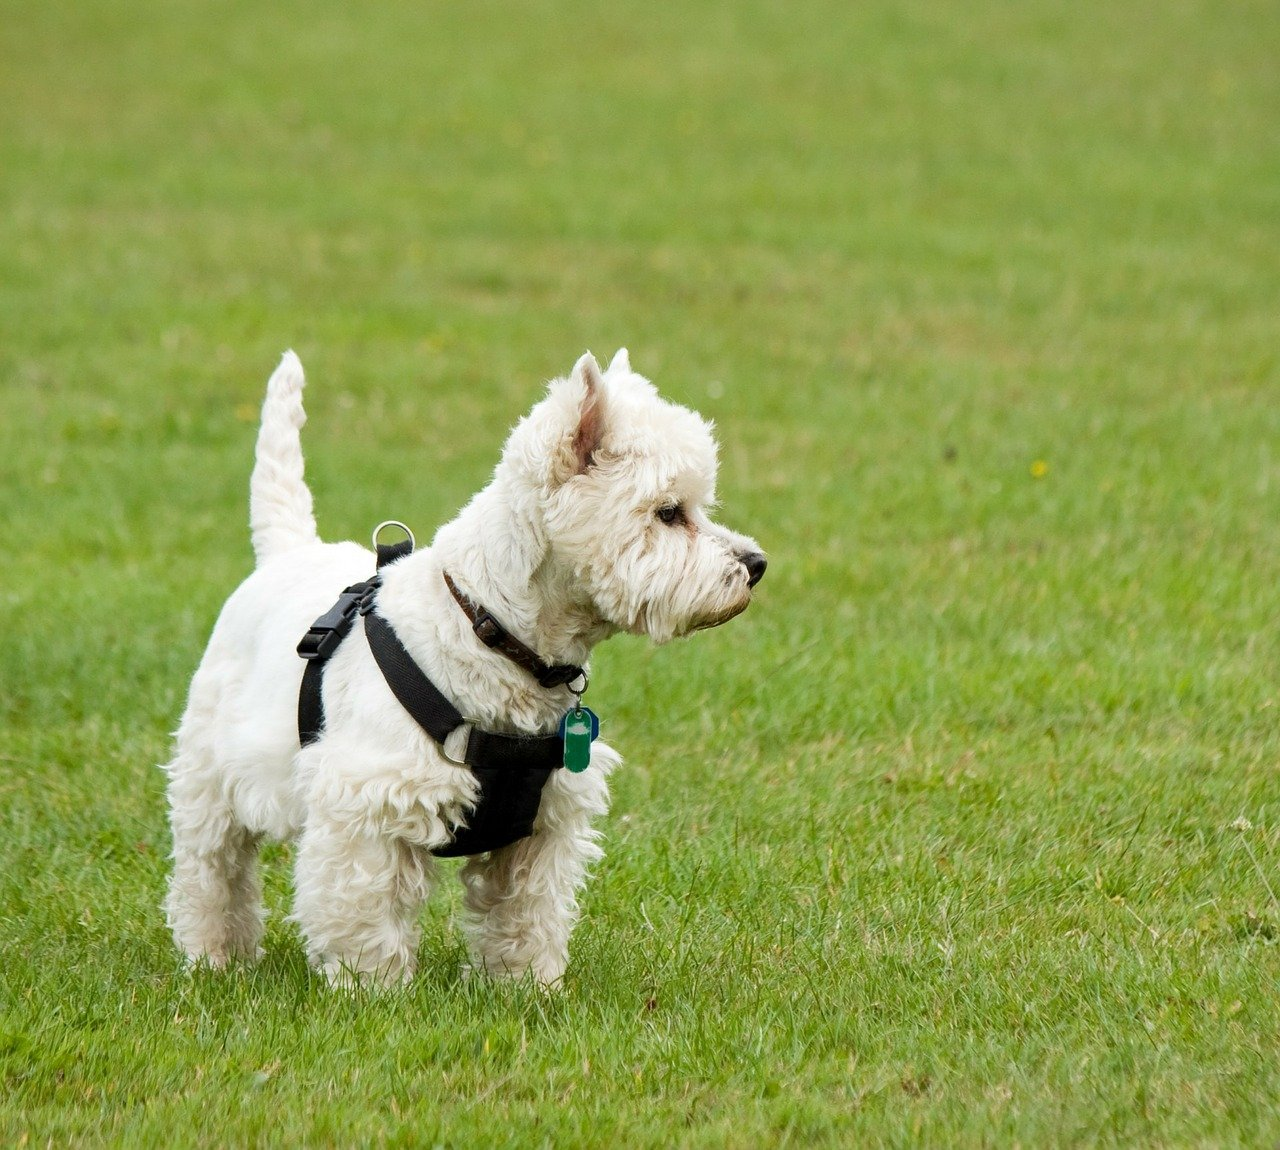 West highland white terrier - Foto Pixabay